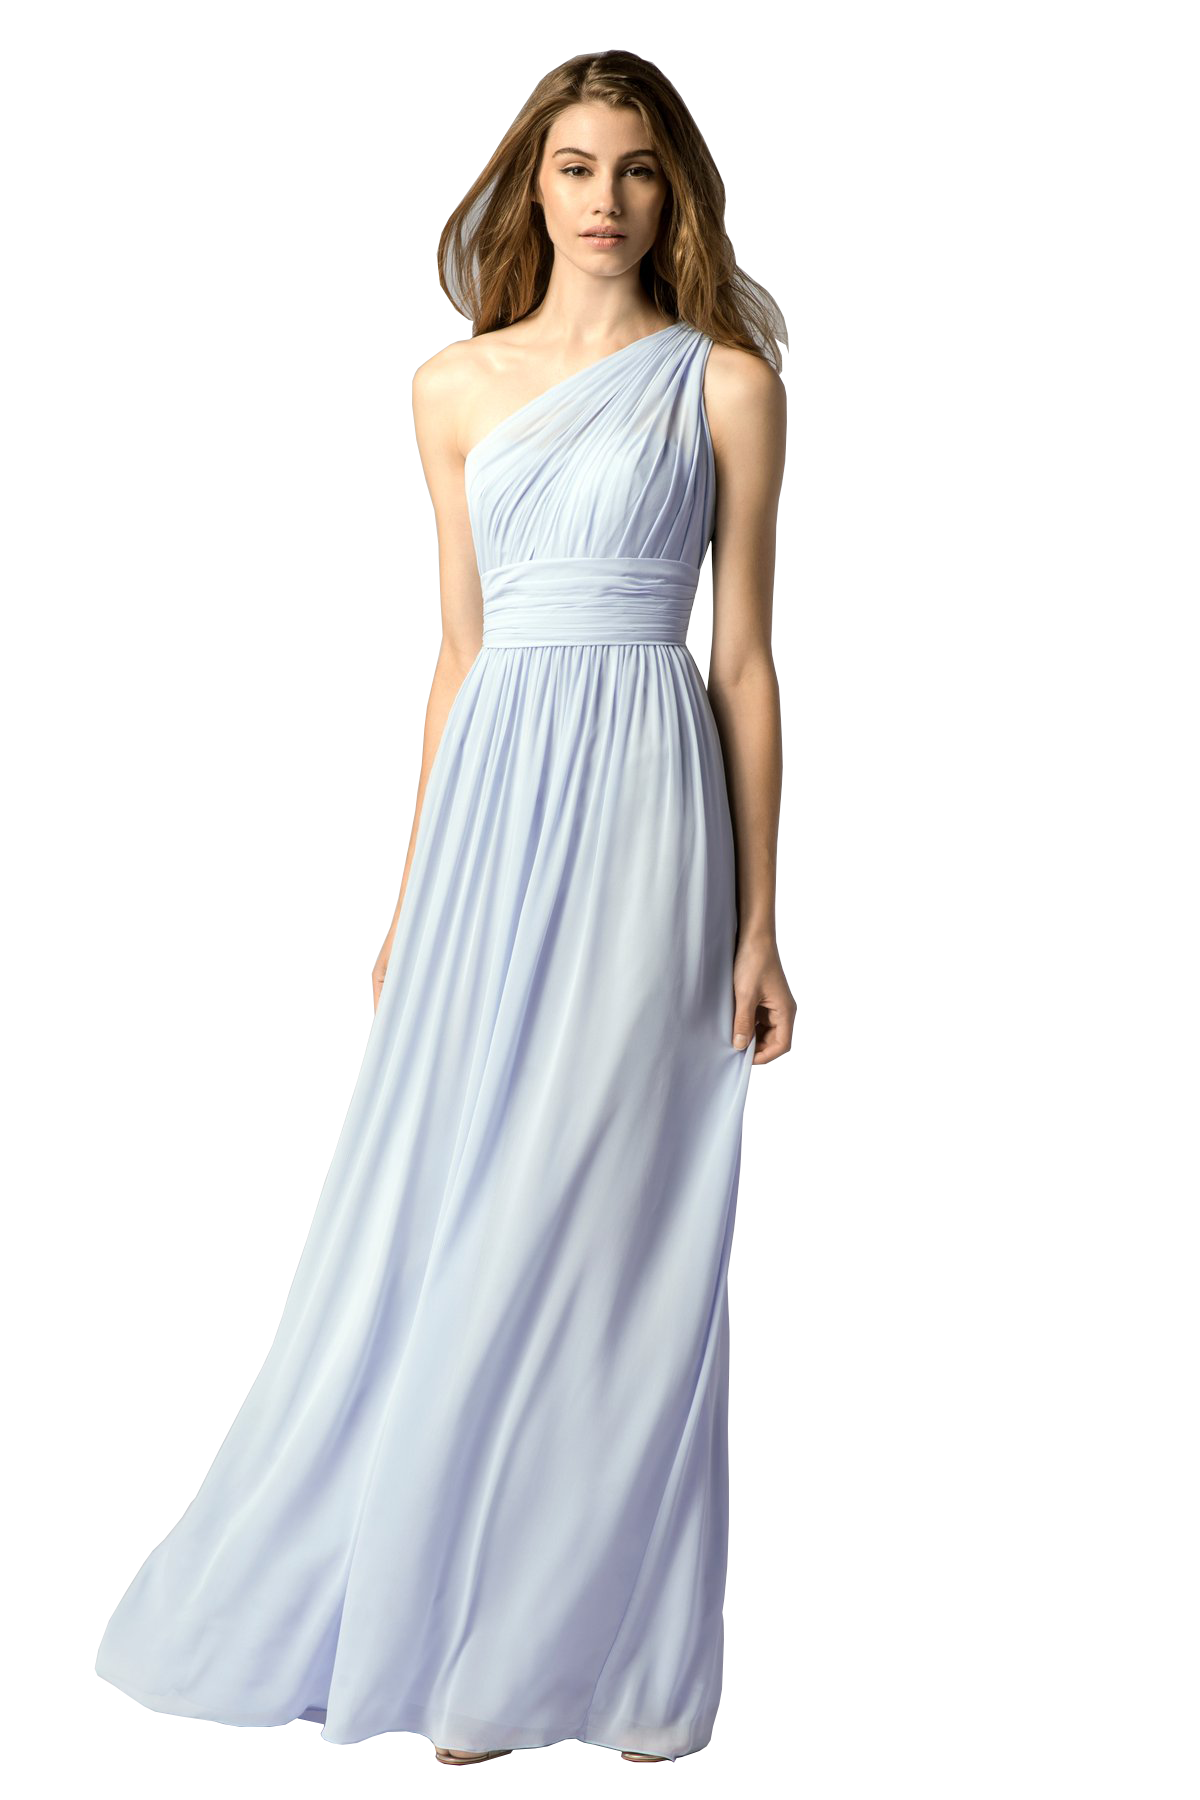 Watters 7546I One-shoulder, crinkle chiffon dress with shirred bodice featuring front key-hole and shirred a-line skirt.